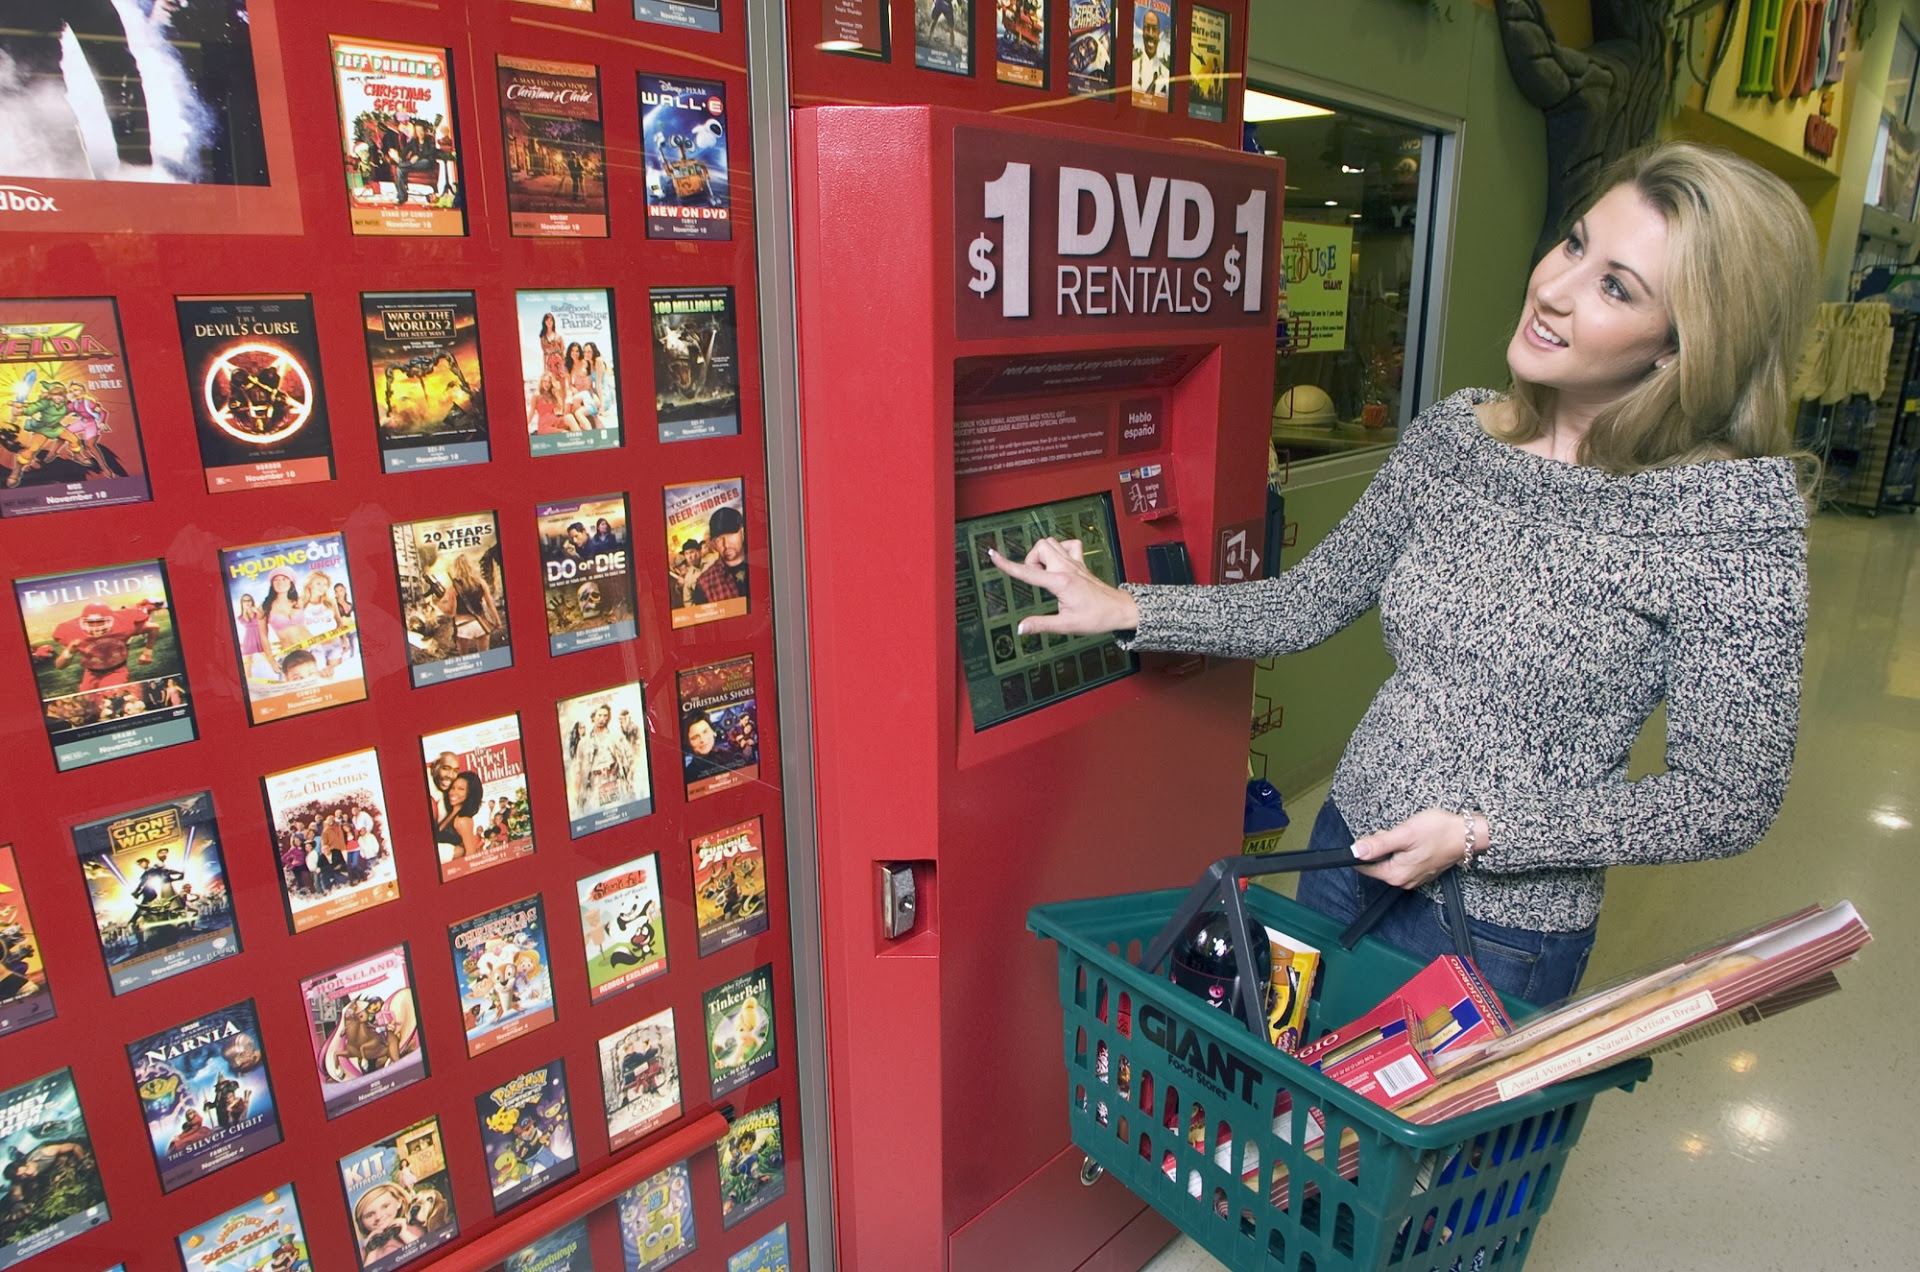 T-Mobile users get a free game rental from Redbox today screenshot